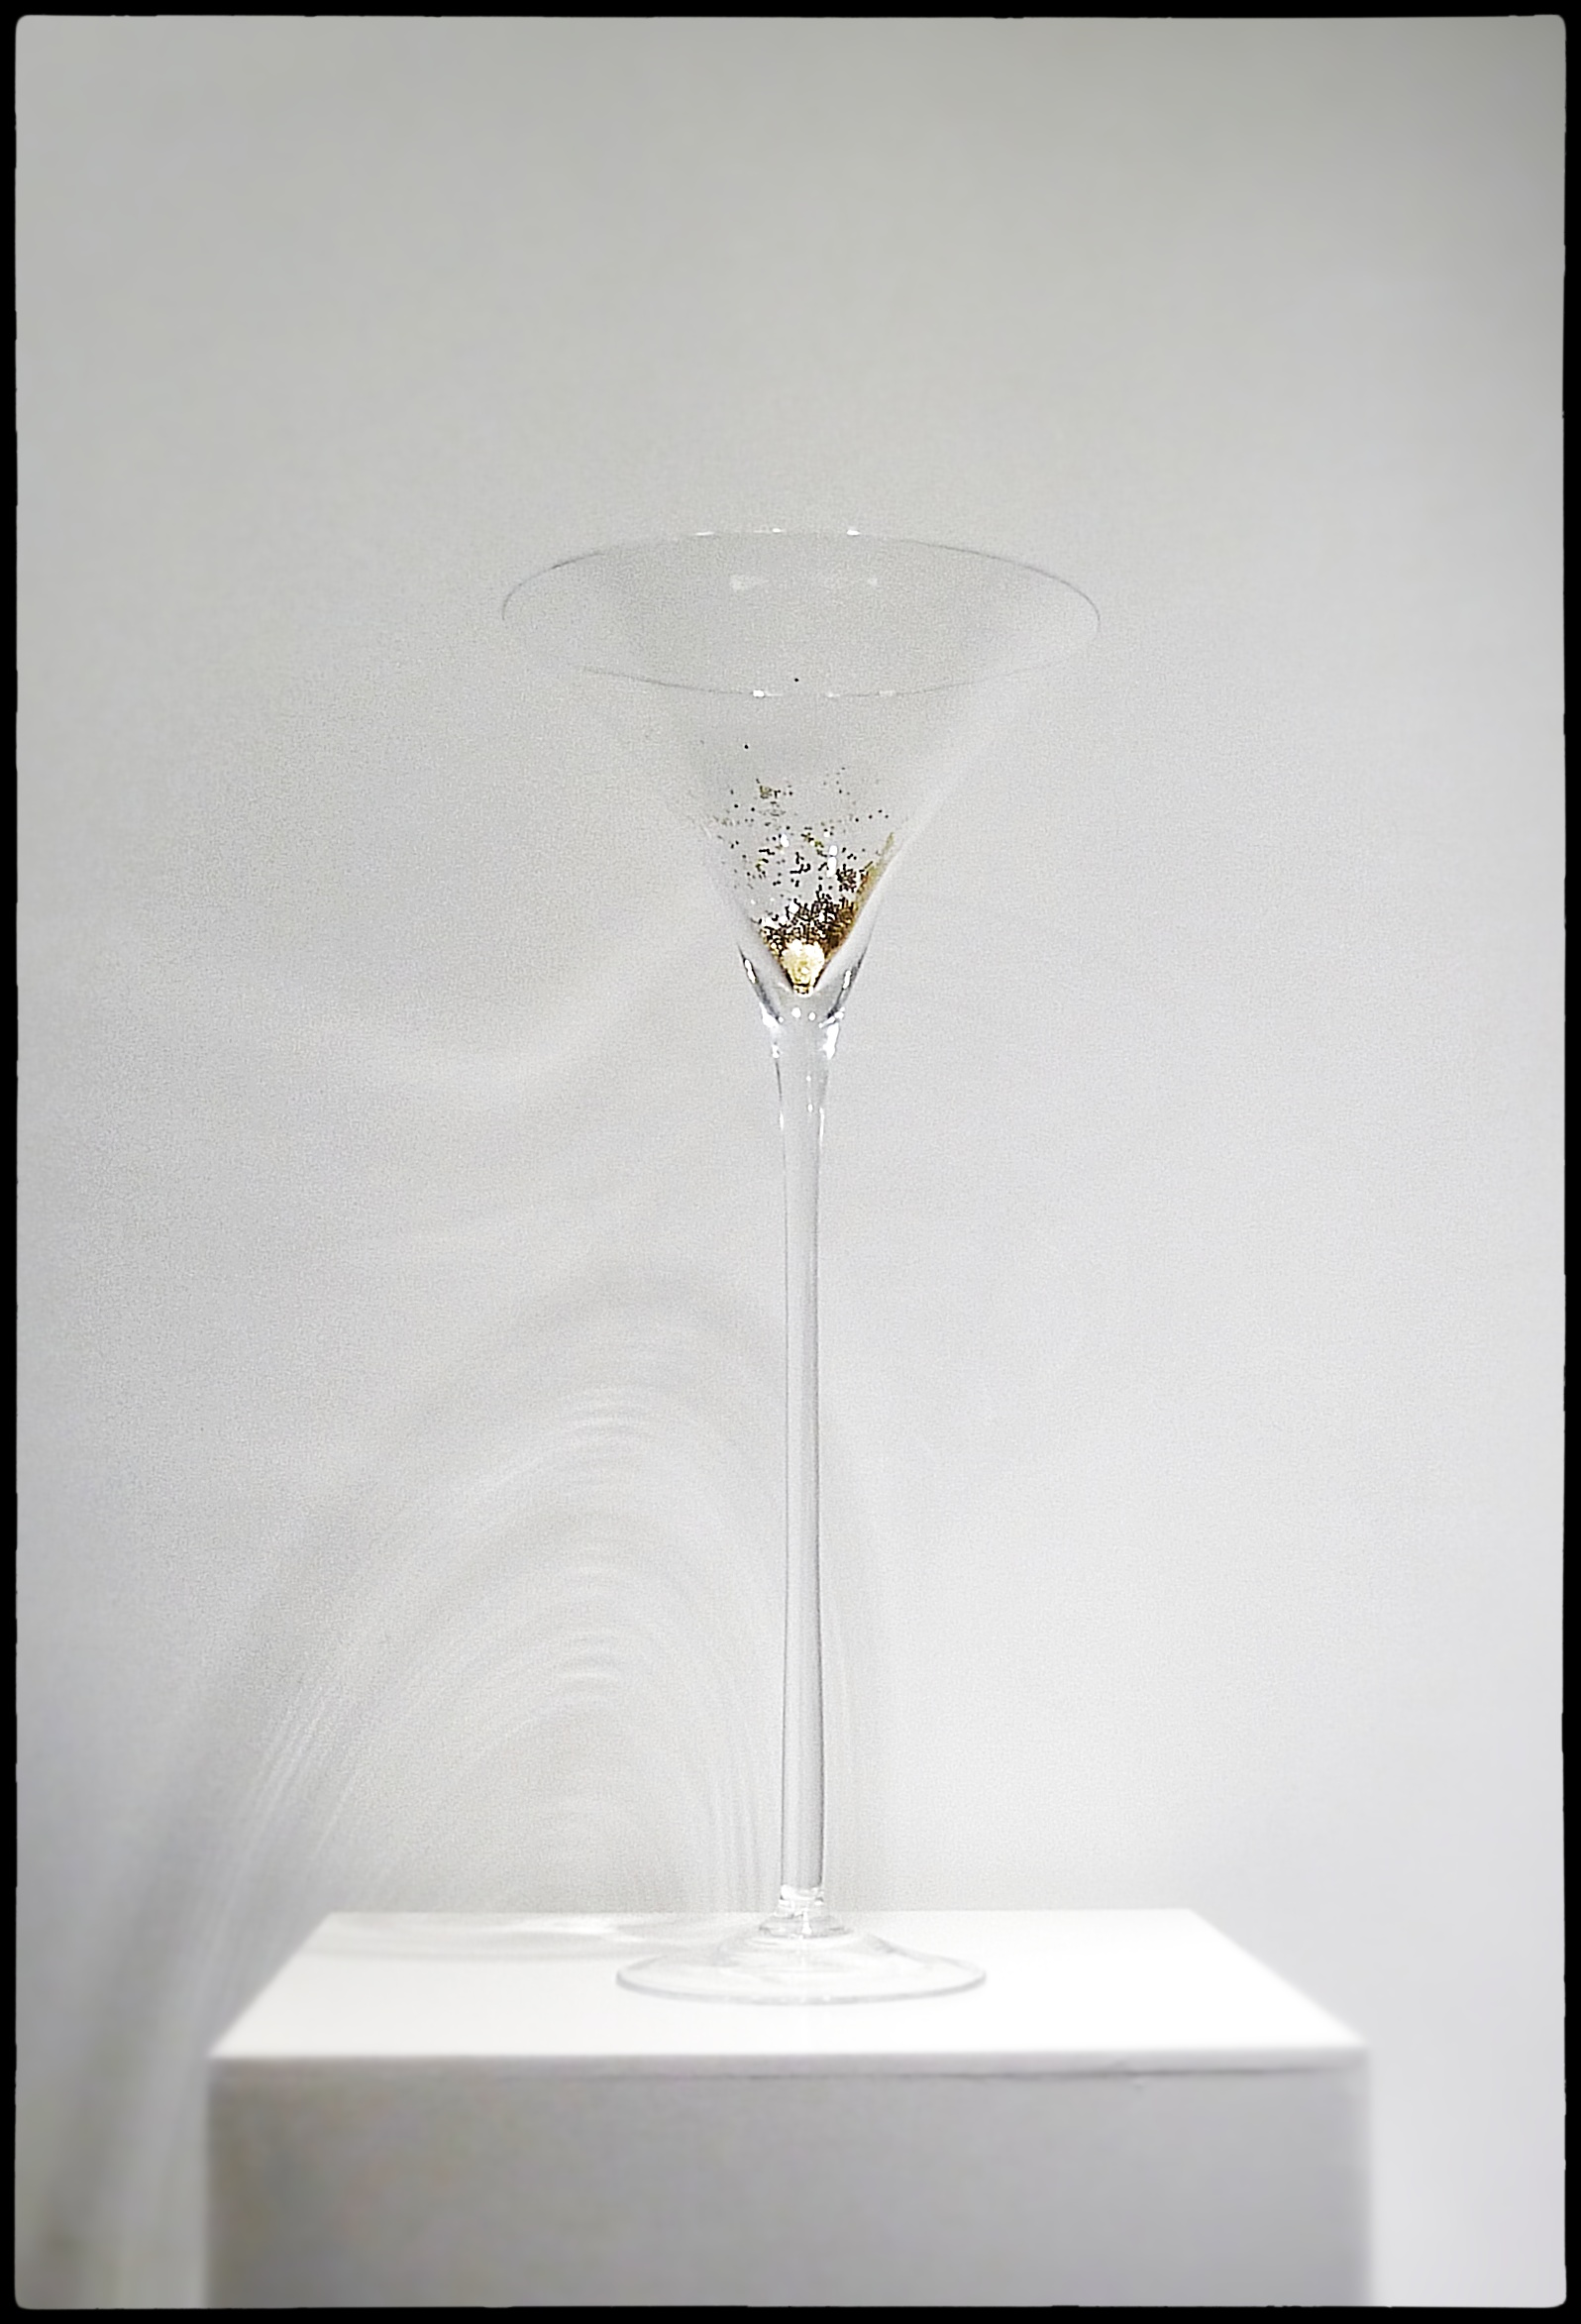 Coupe martini